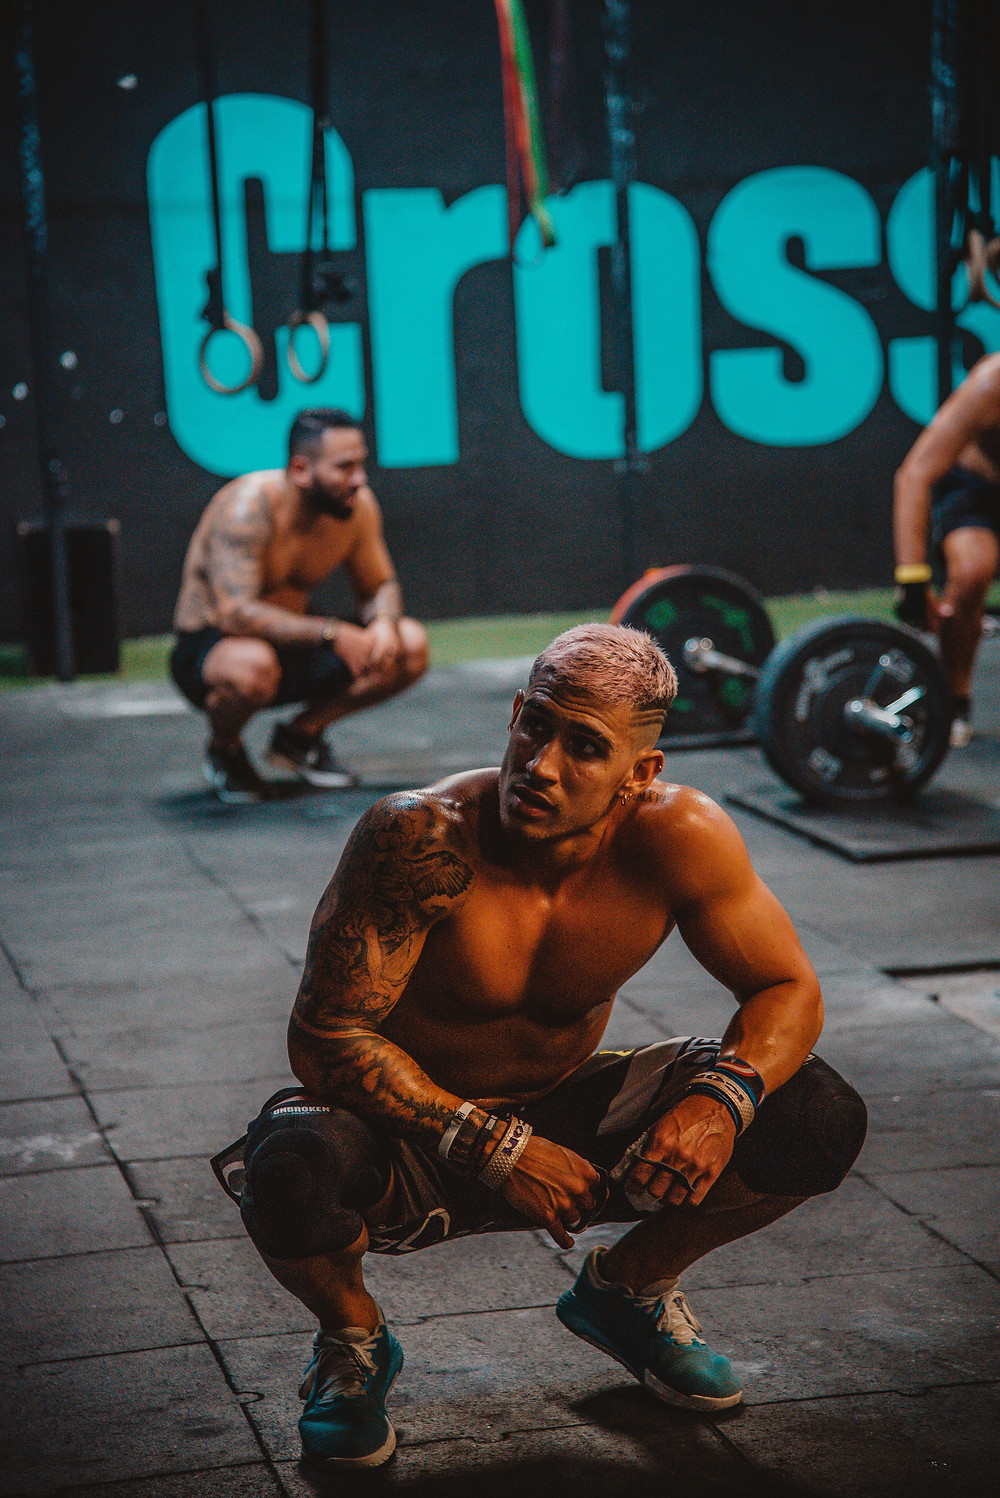 CrossFit Athlete - How to lose weight in CrossFit